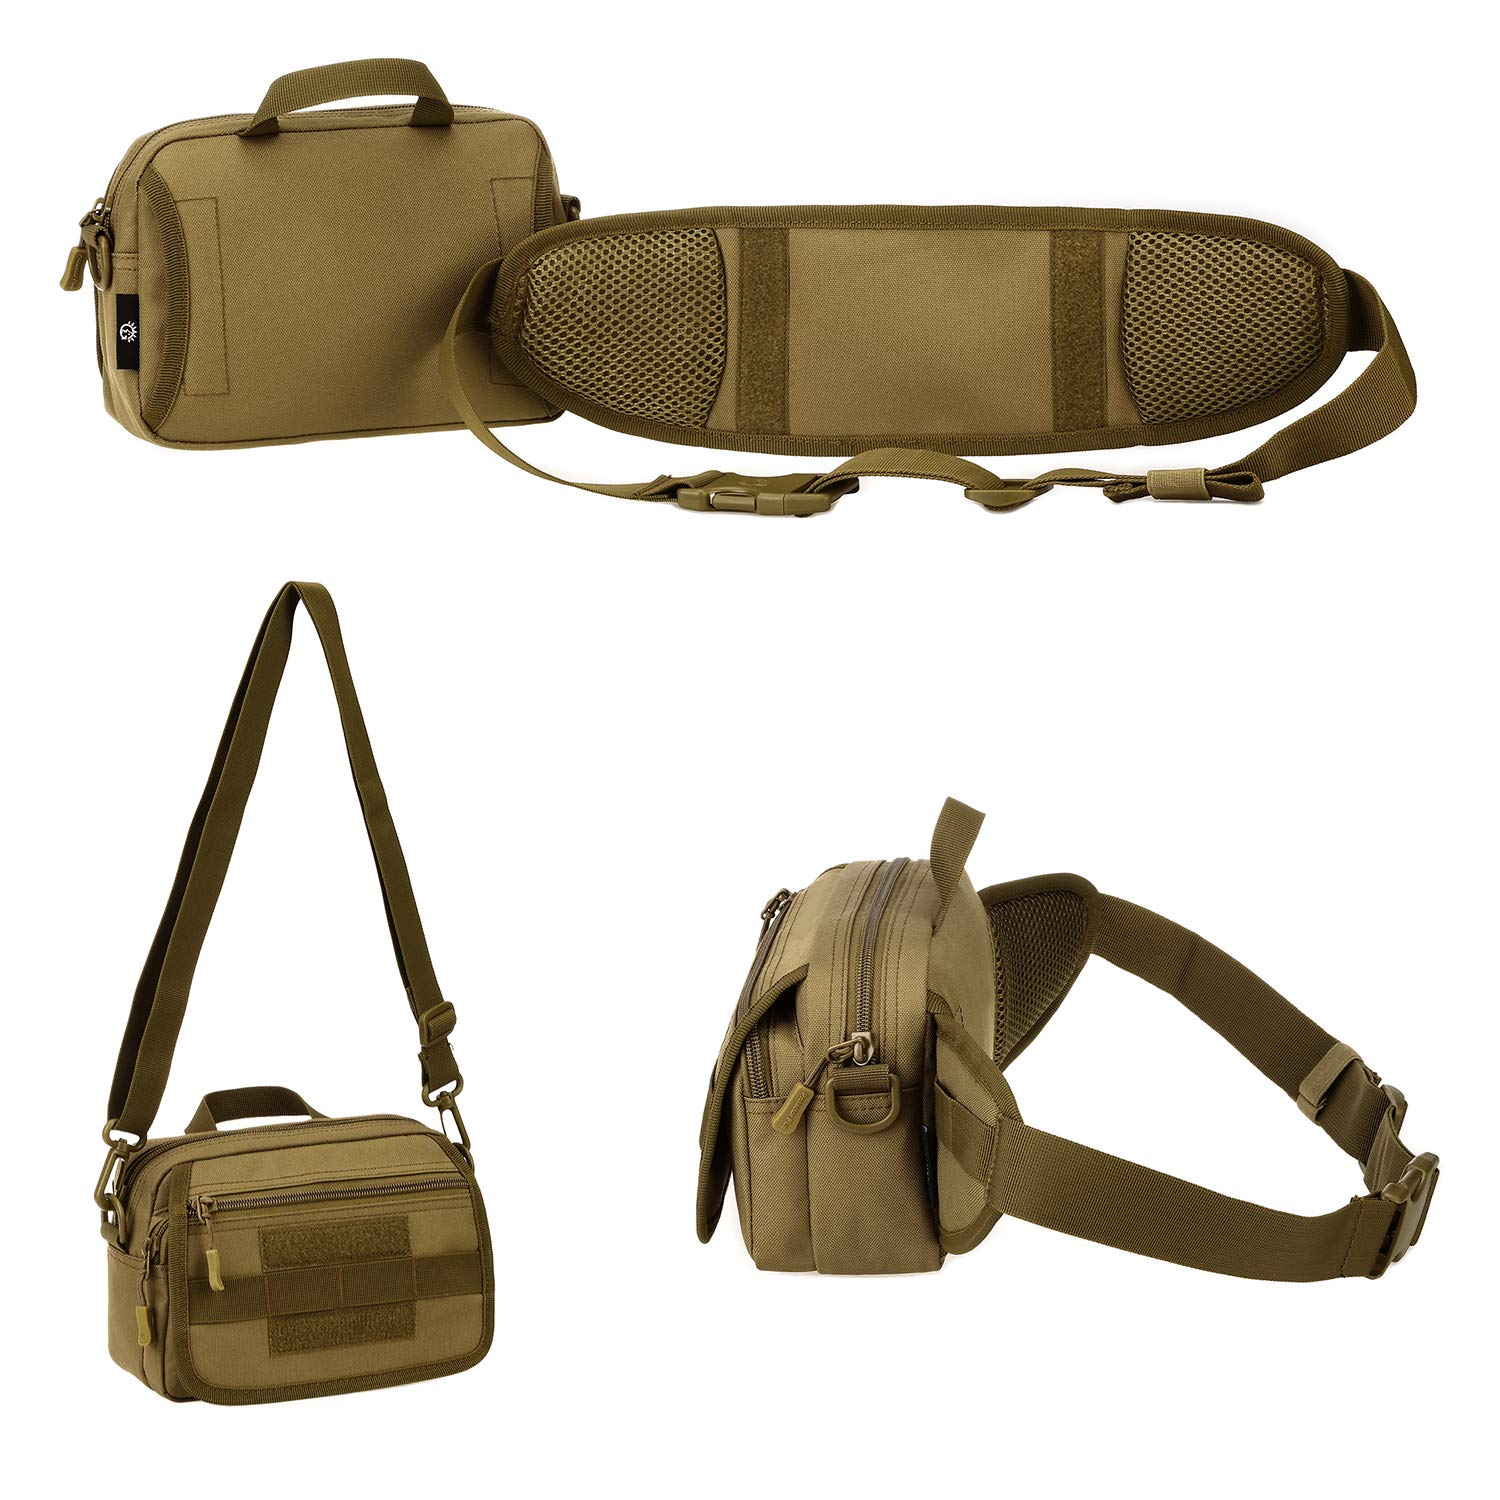 PlasMaller Outdoor Fanny Pack Tactical Waist Pack Single Shoulder Bag Multiple Combinations MOLLE Bag Detachable Belt for Traveling Running Hiking Cycling Coyote Brown